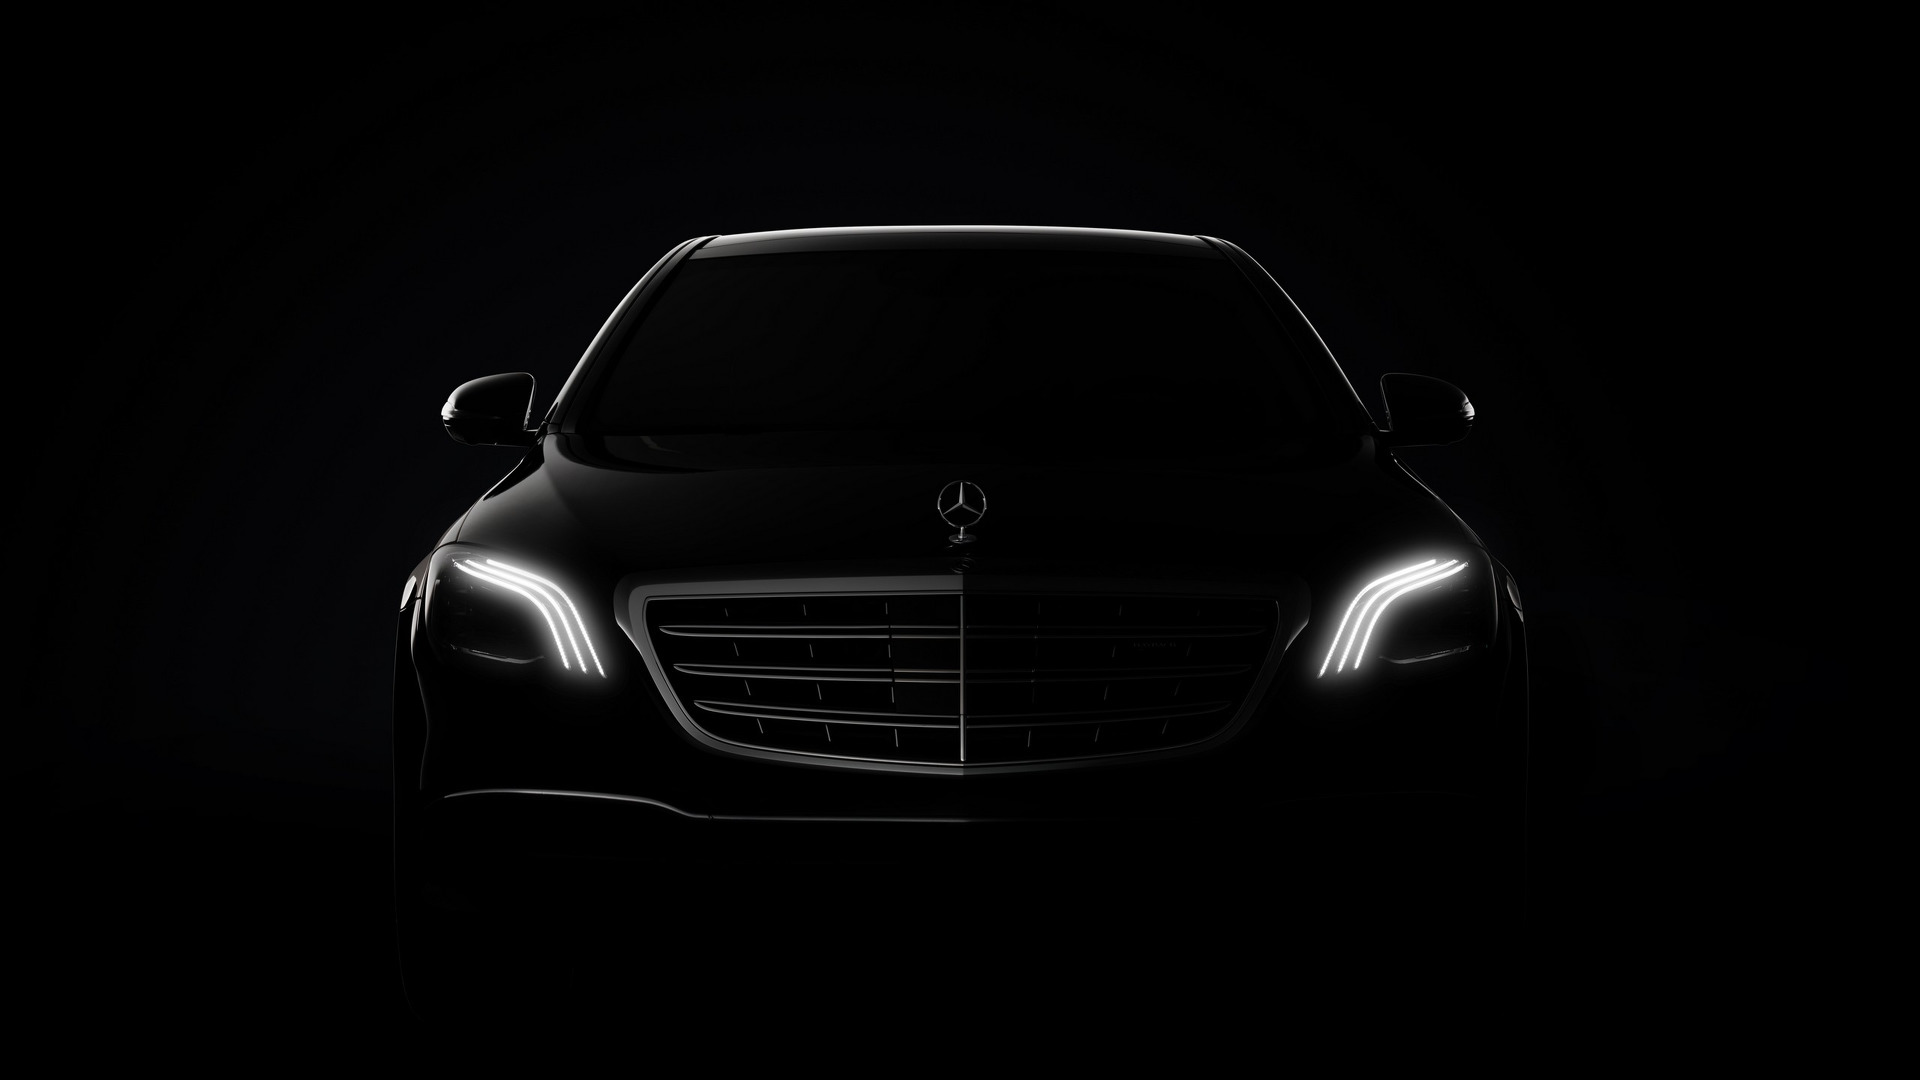 S Class Coupe >> New Mercedes Benz S Class Prepares For Shanghai Reveal | Qatar - YallaMotor